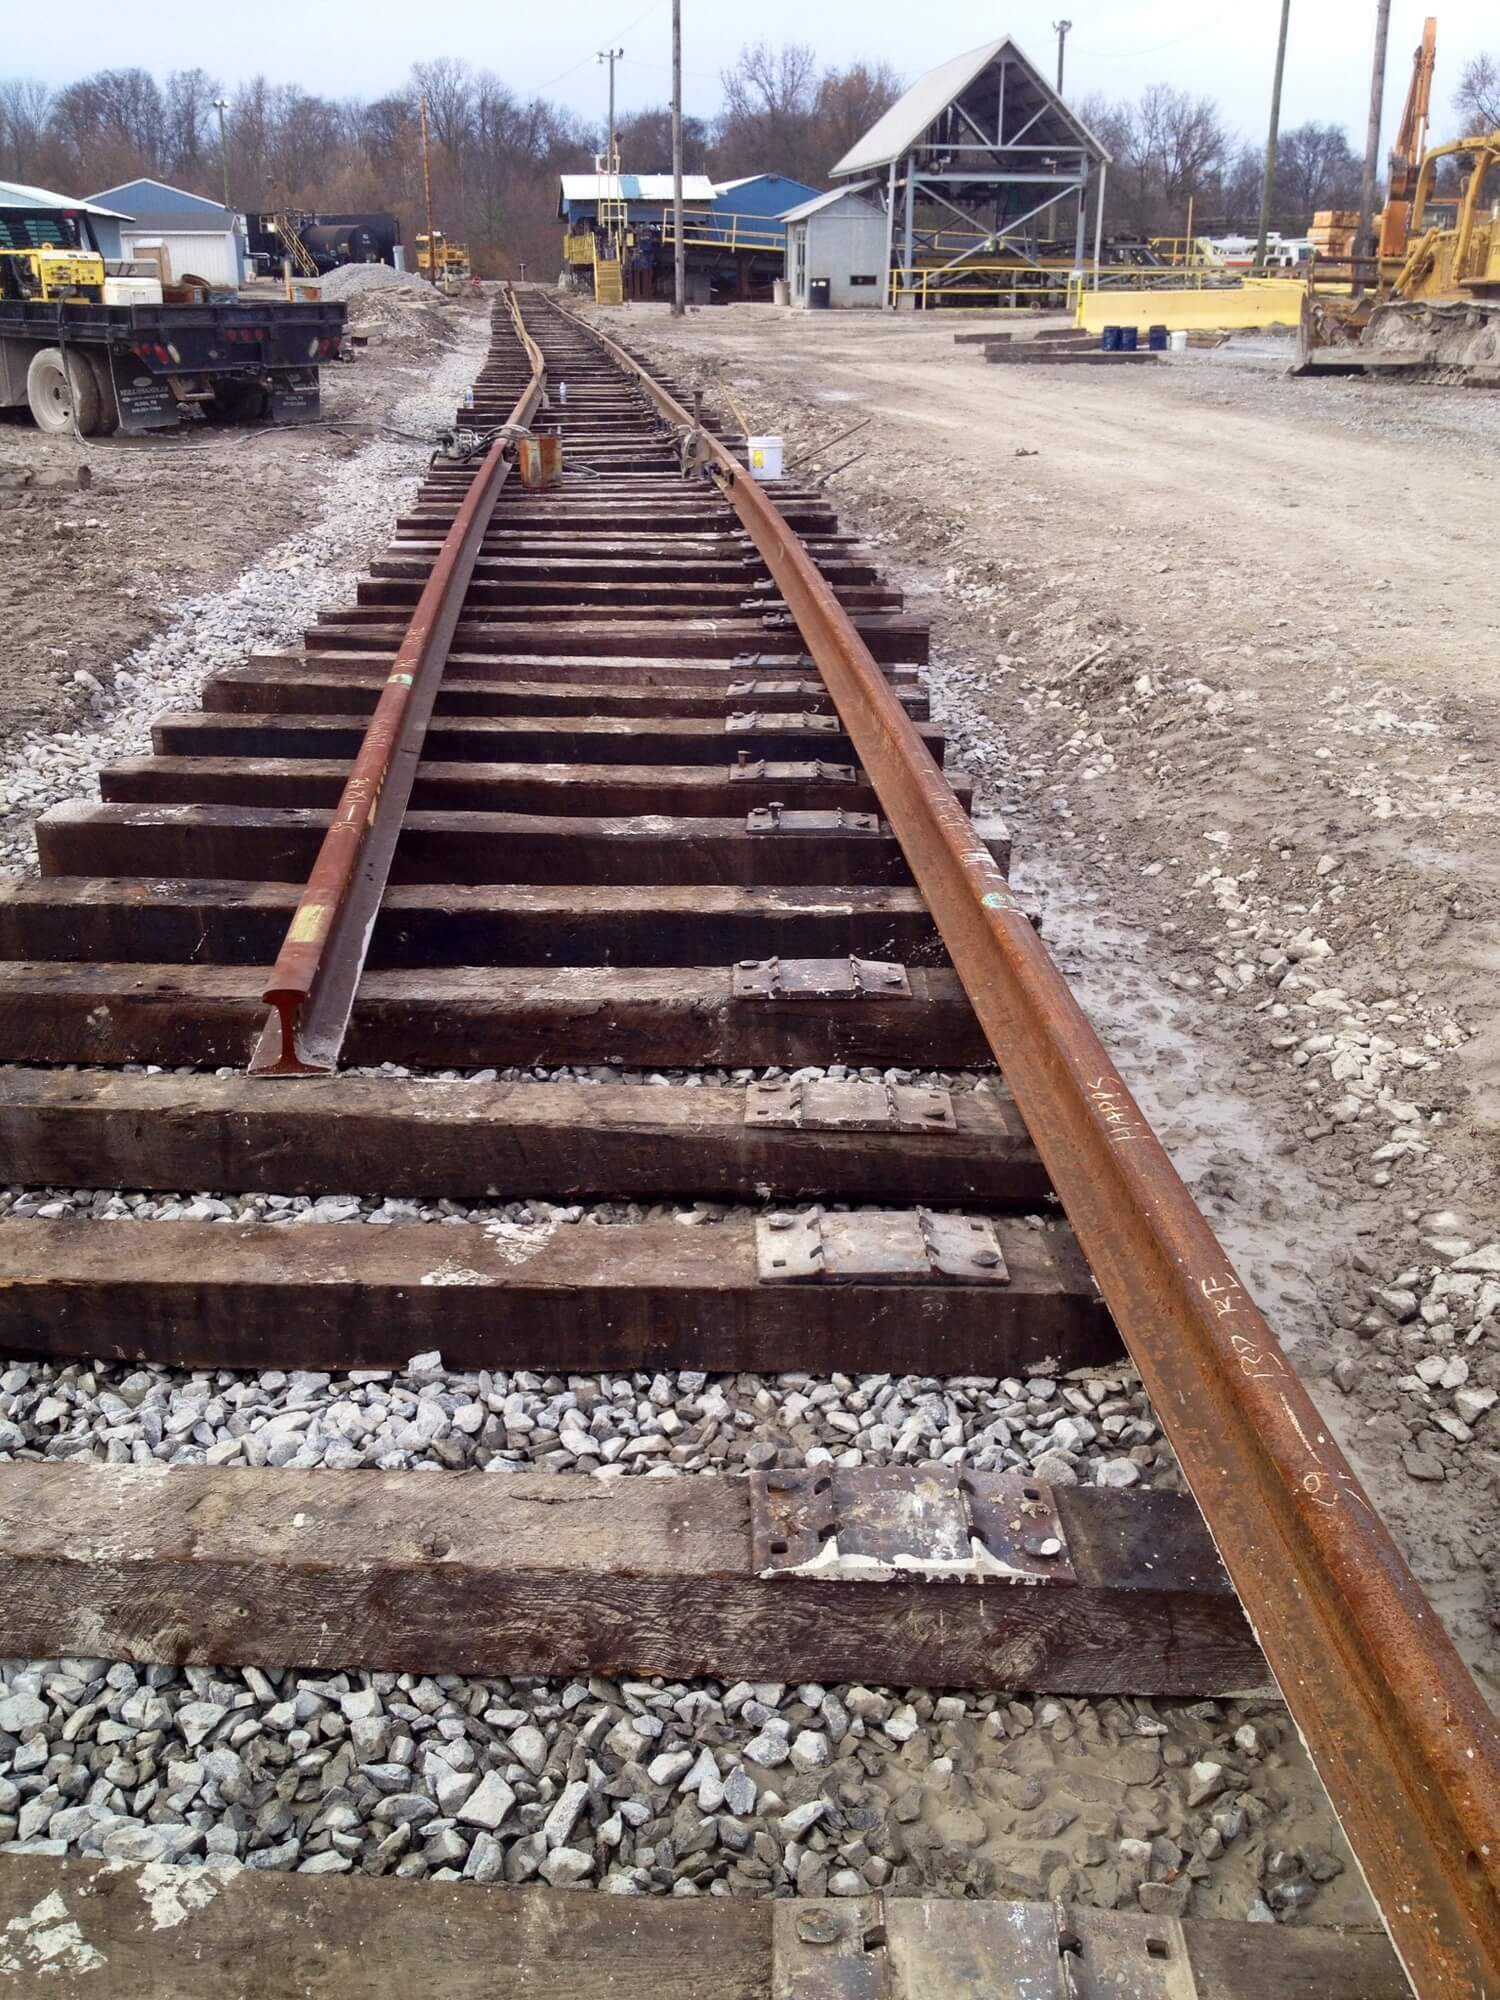 railroad-work-the-source-of-materials-at-rail-yard-studios-1-.original.jpeg